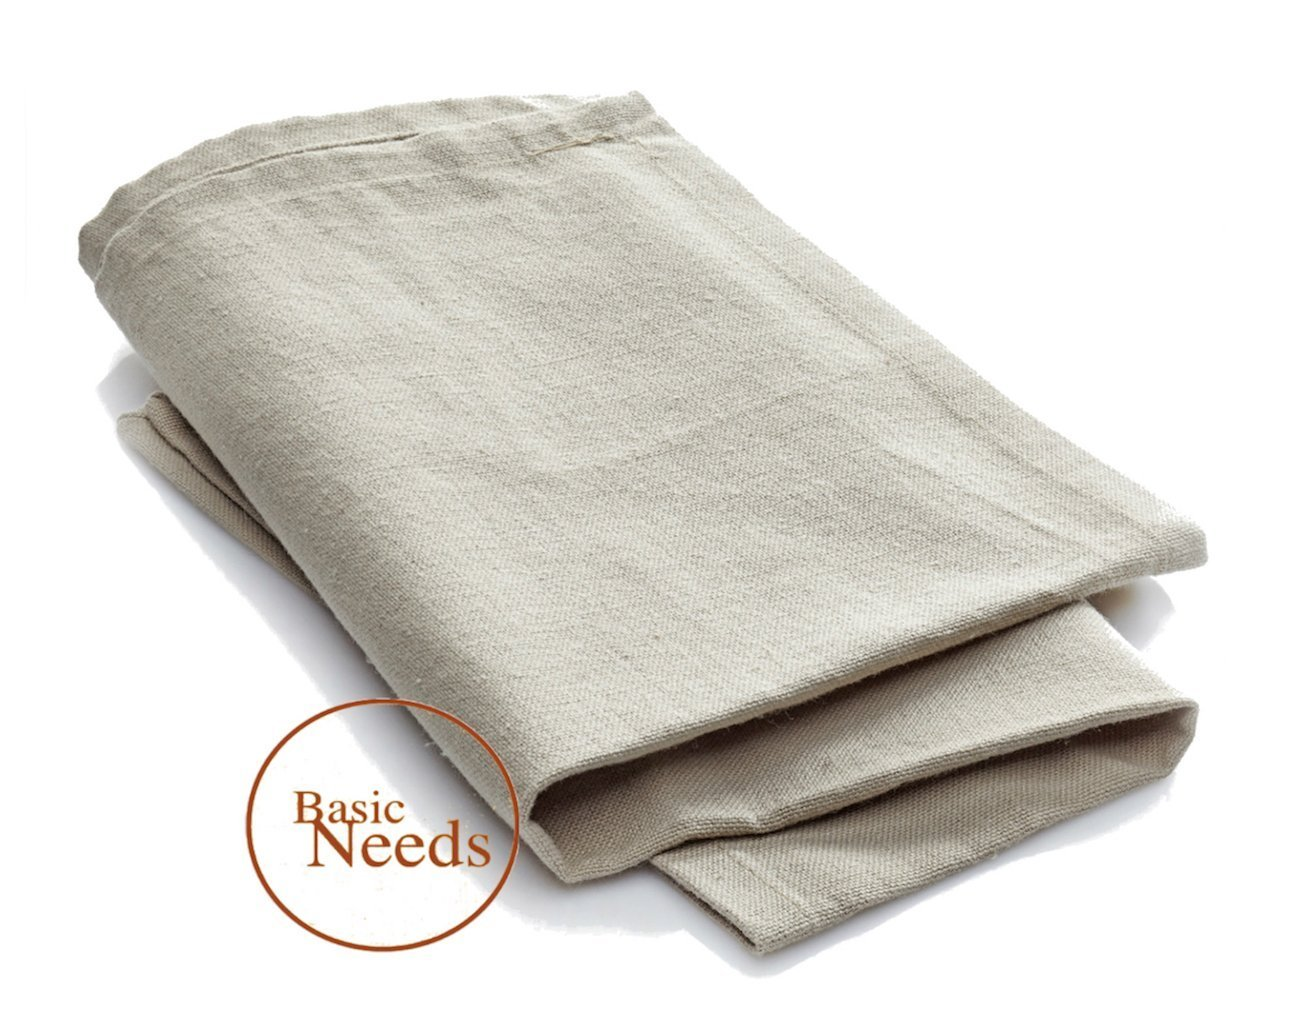 Basic Needs Baker' s Couche Flax Linen Proofing Cloth - Kitchen Linen Accessories for Baking French Bread, Baguettes, Loafs and more!